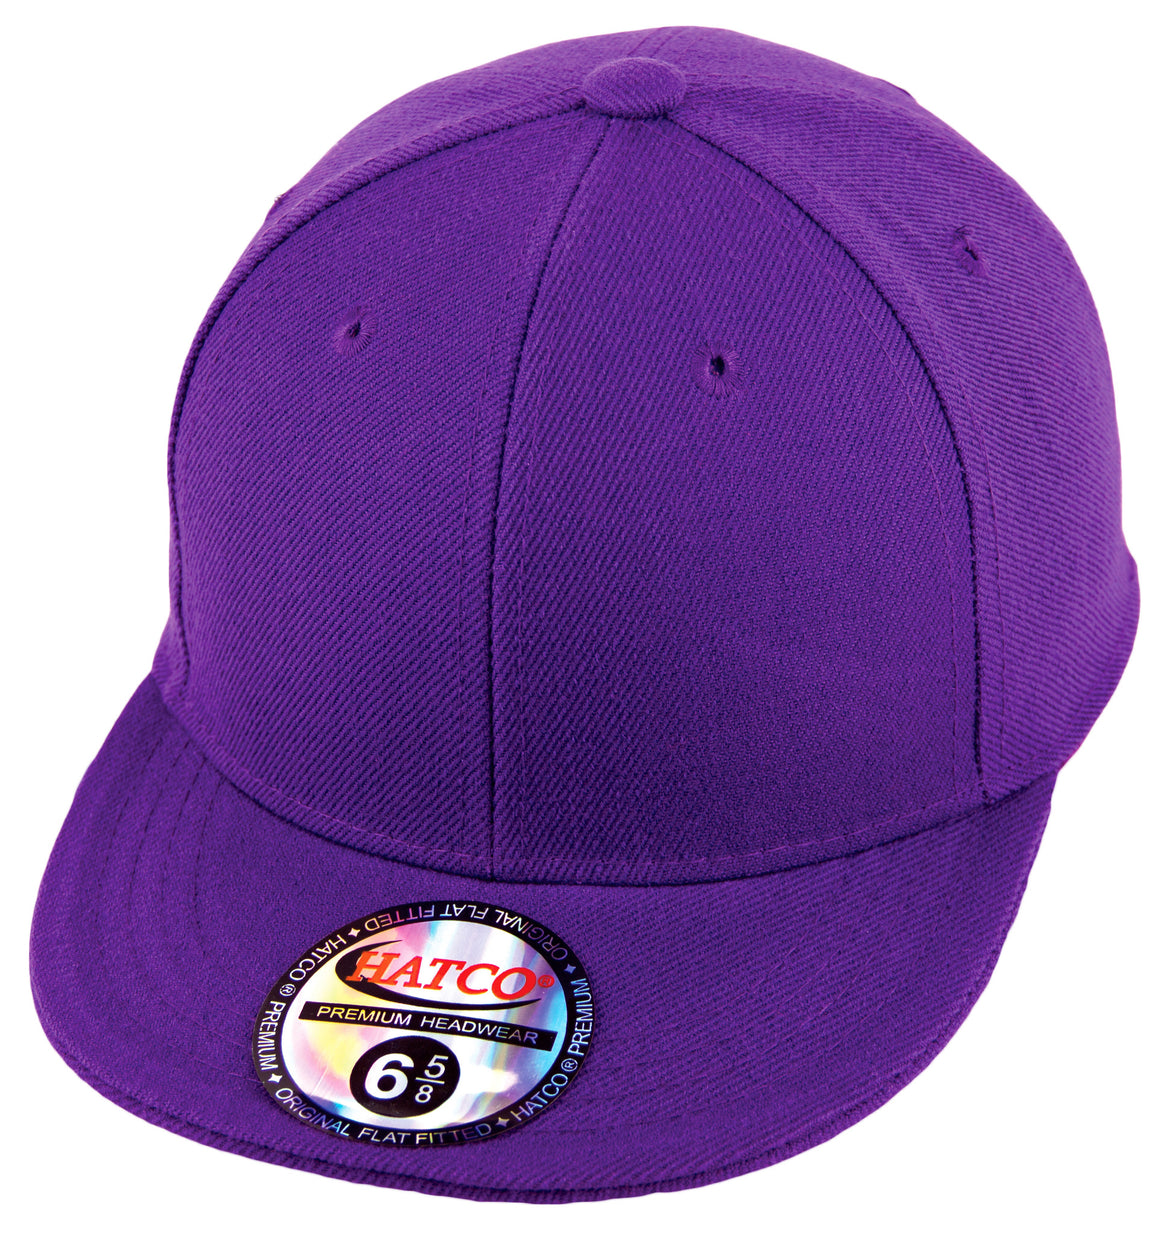 Blank Flat Fitted Cap - Kids - Purple - HATCOcaps.com